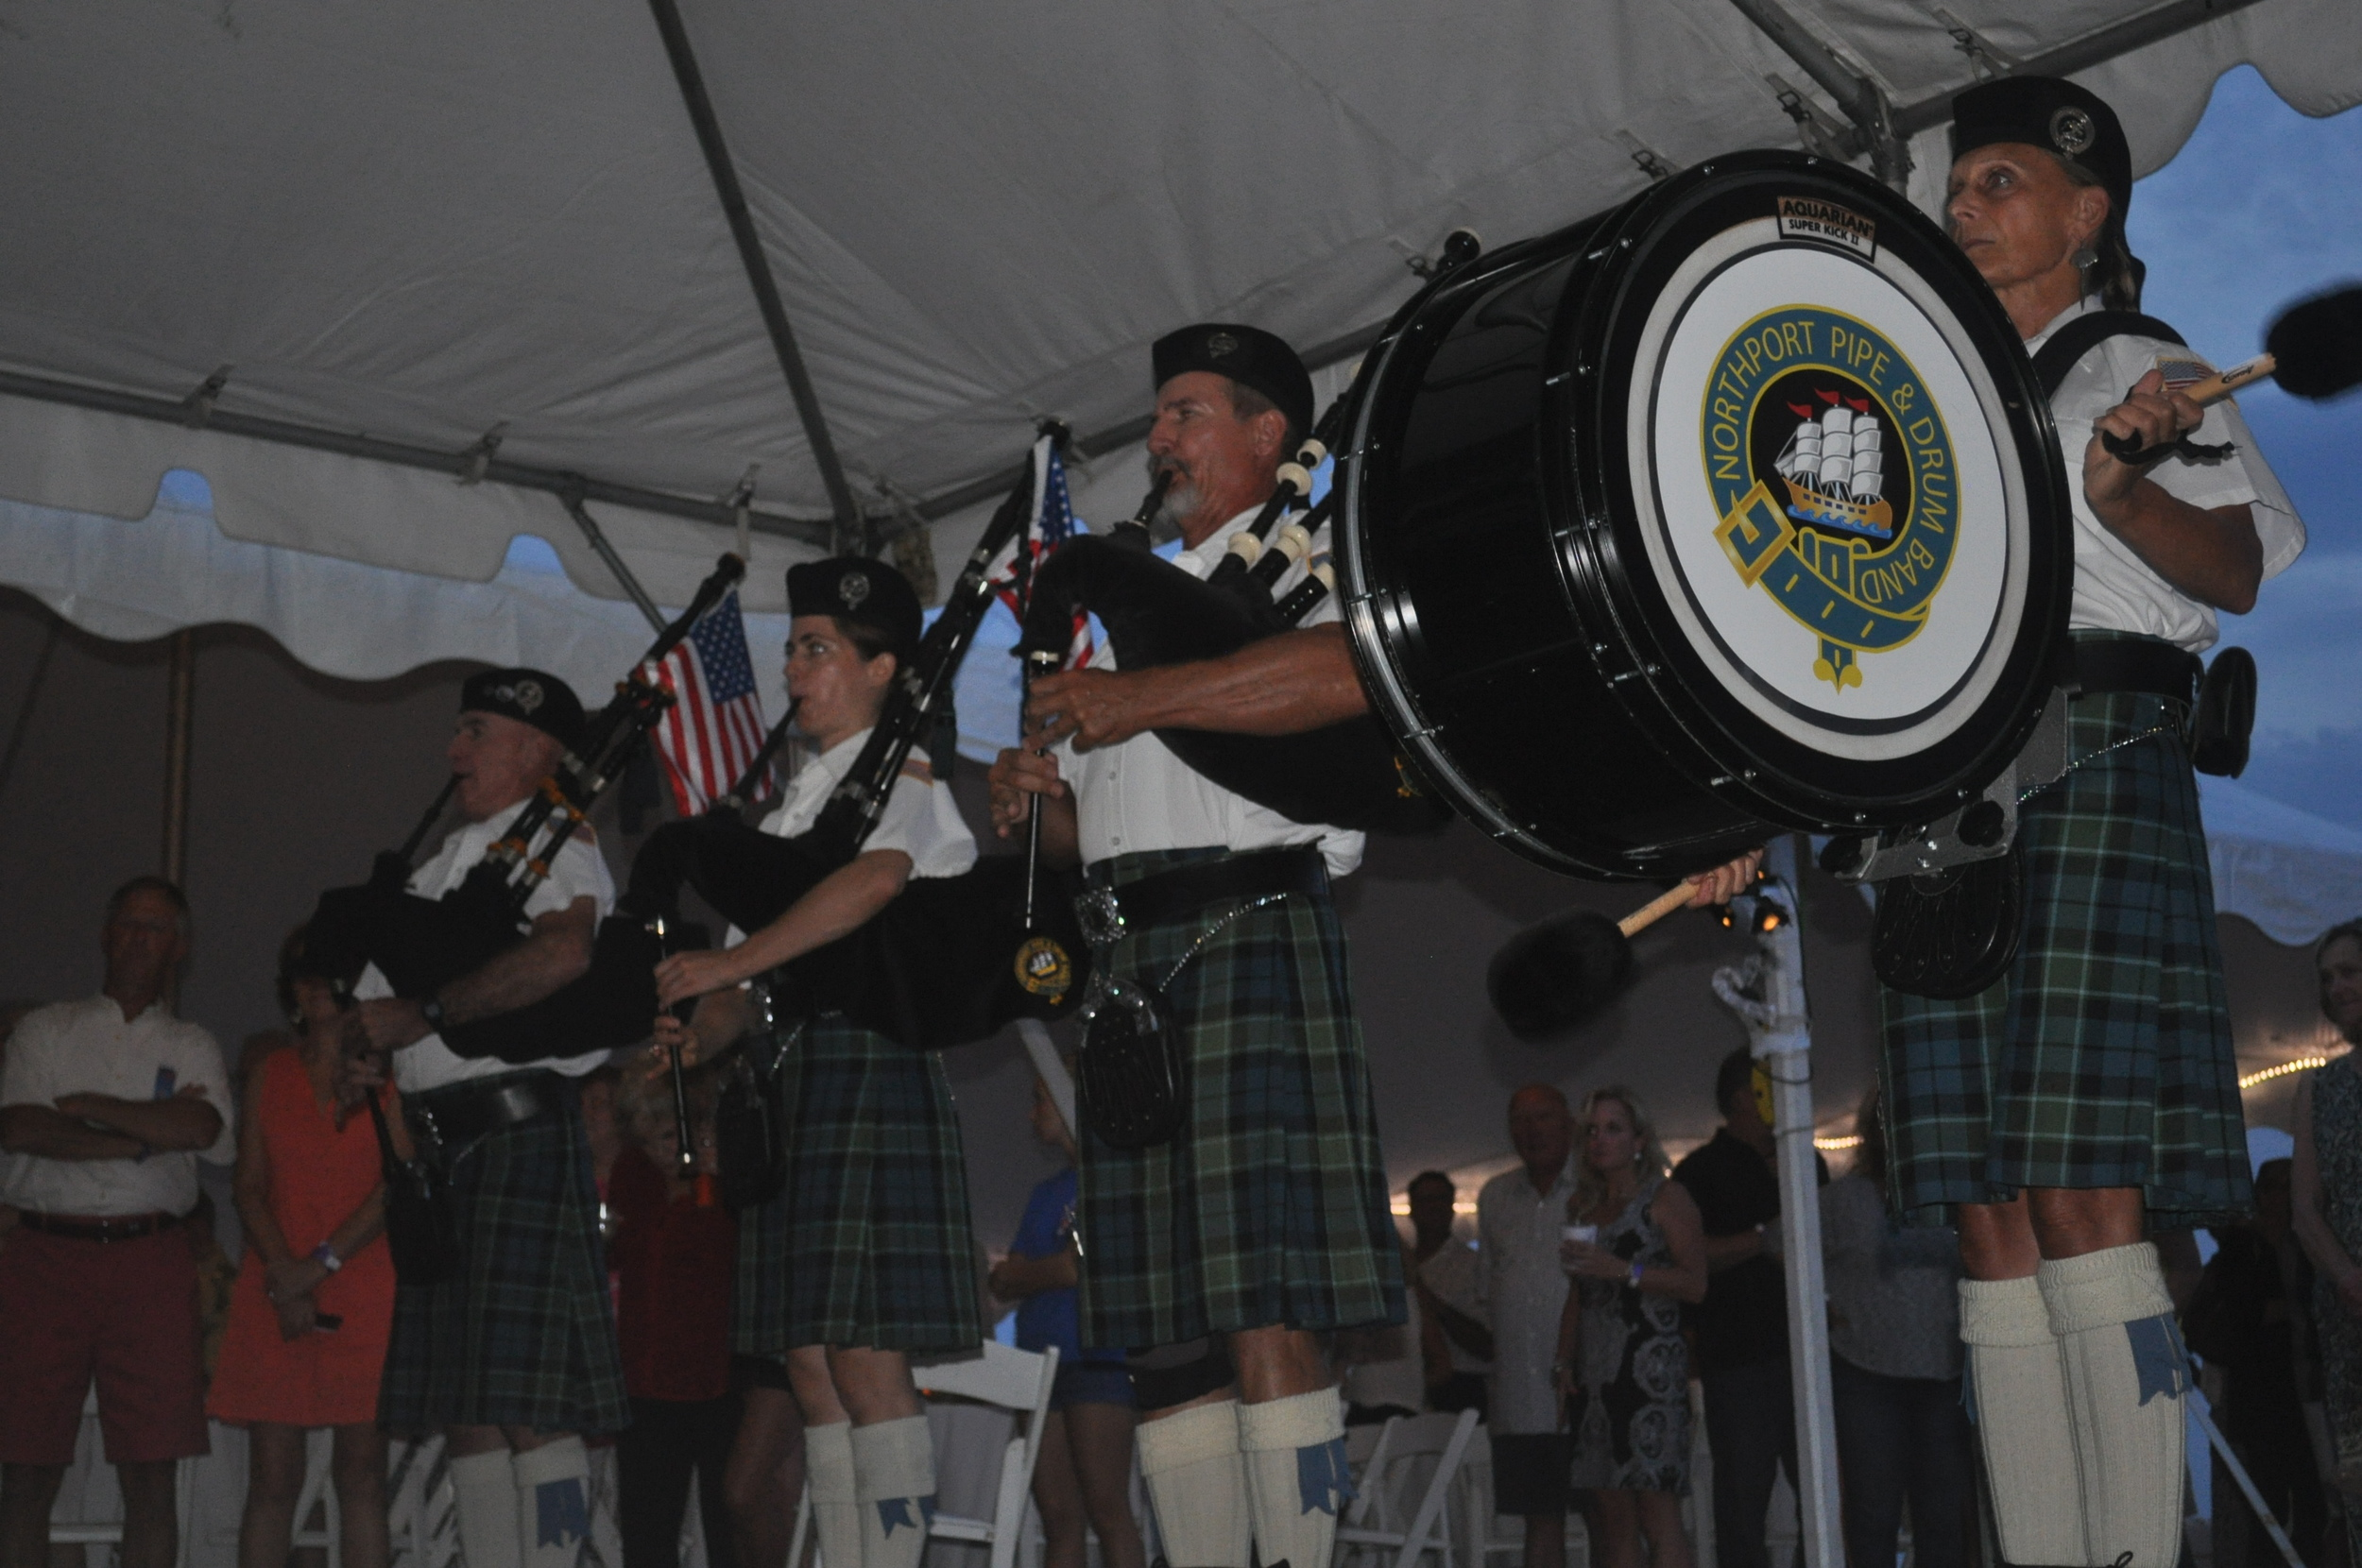 Members of the Northport Pipe & Drum Band perform at the clam bake ahead of the ceremonies.